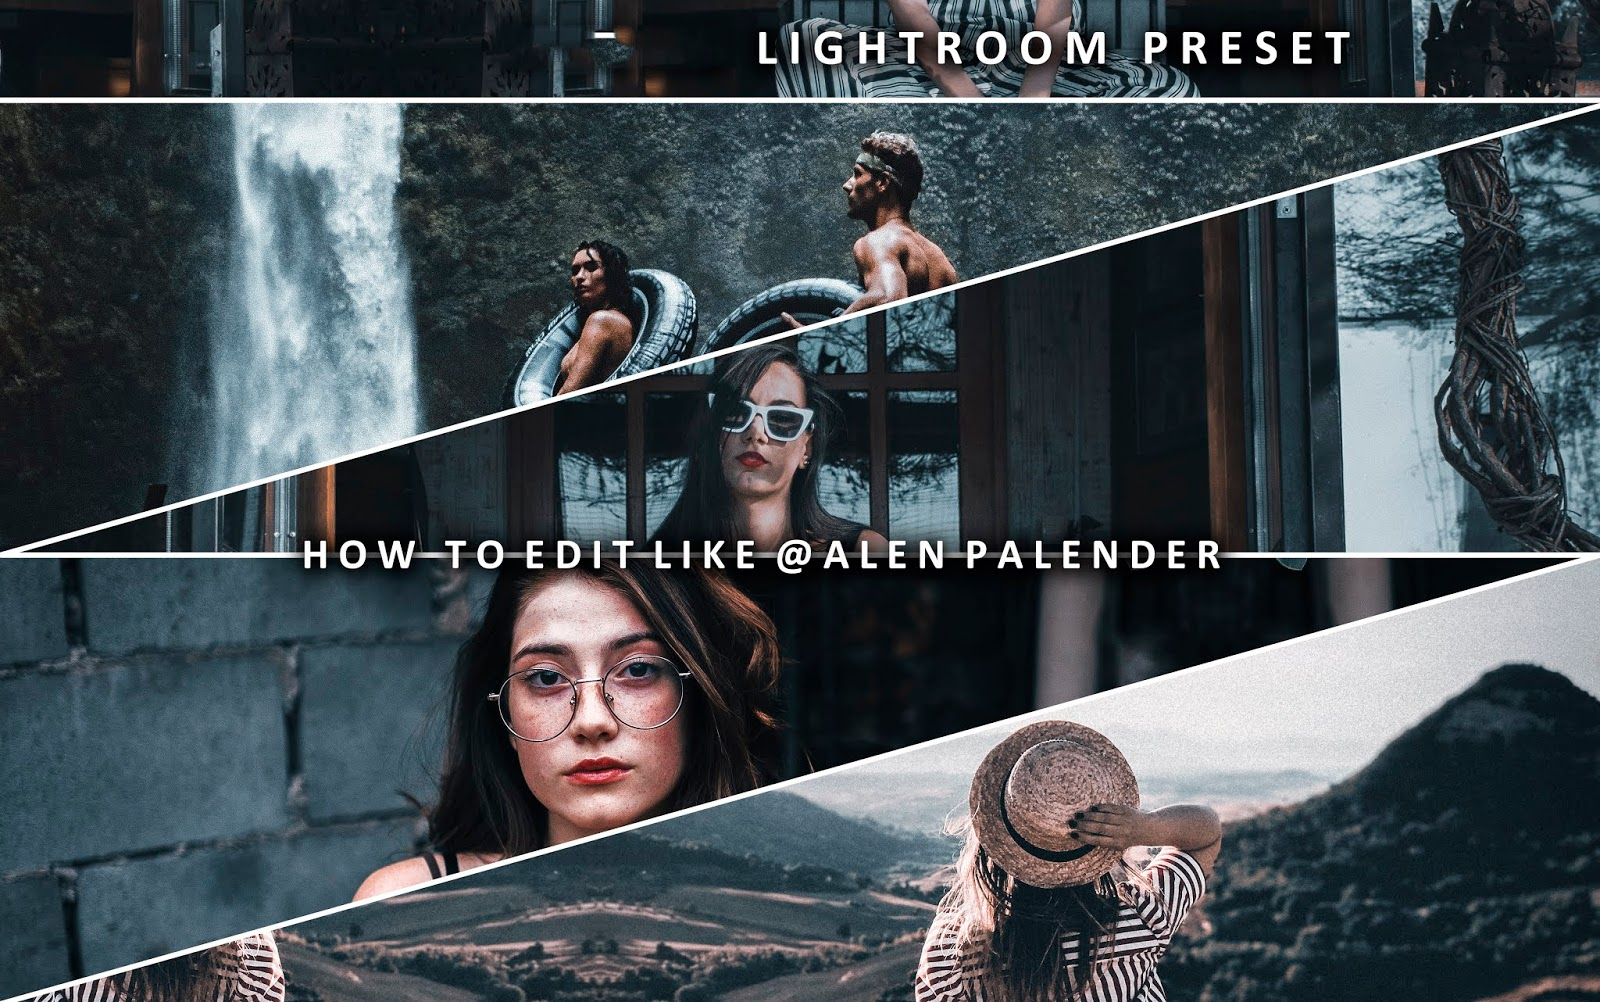 Download Alen Palender Lightroom Preset for Free | How to Edit Photos Like Alen Palender in Lightroom